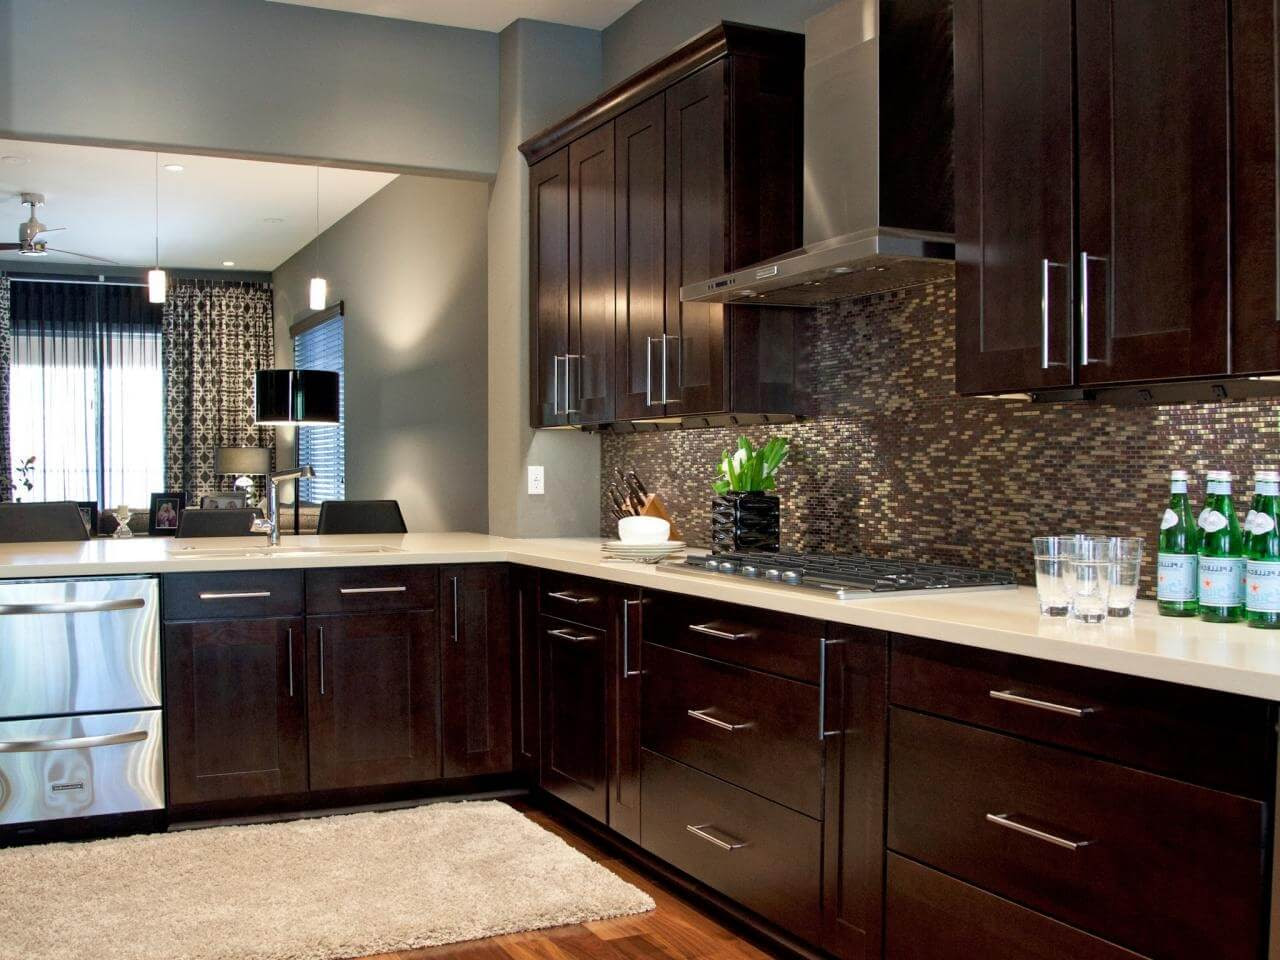 RTA Kitchen Cabinets: Why You should Use Them in Your ...